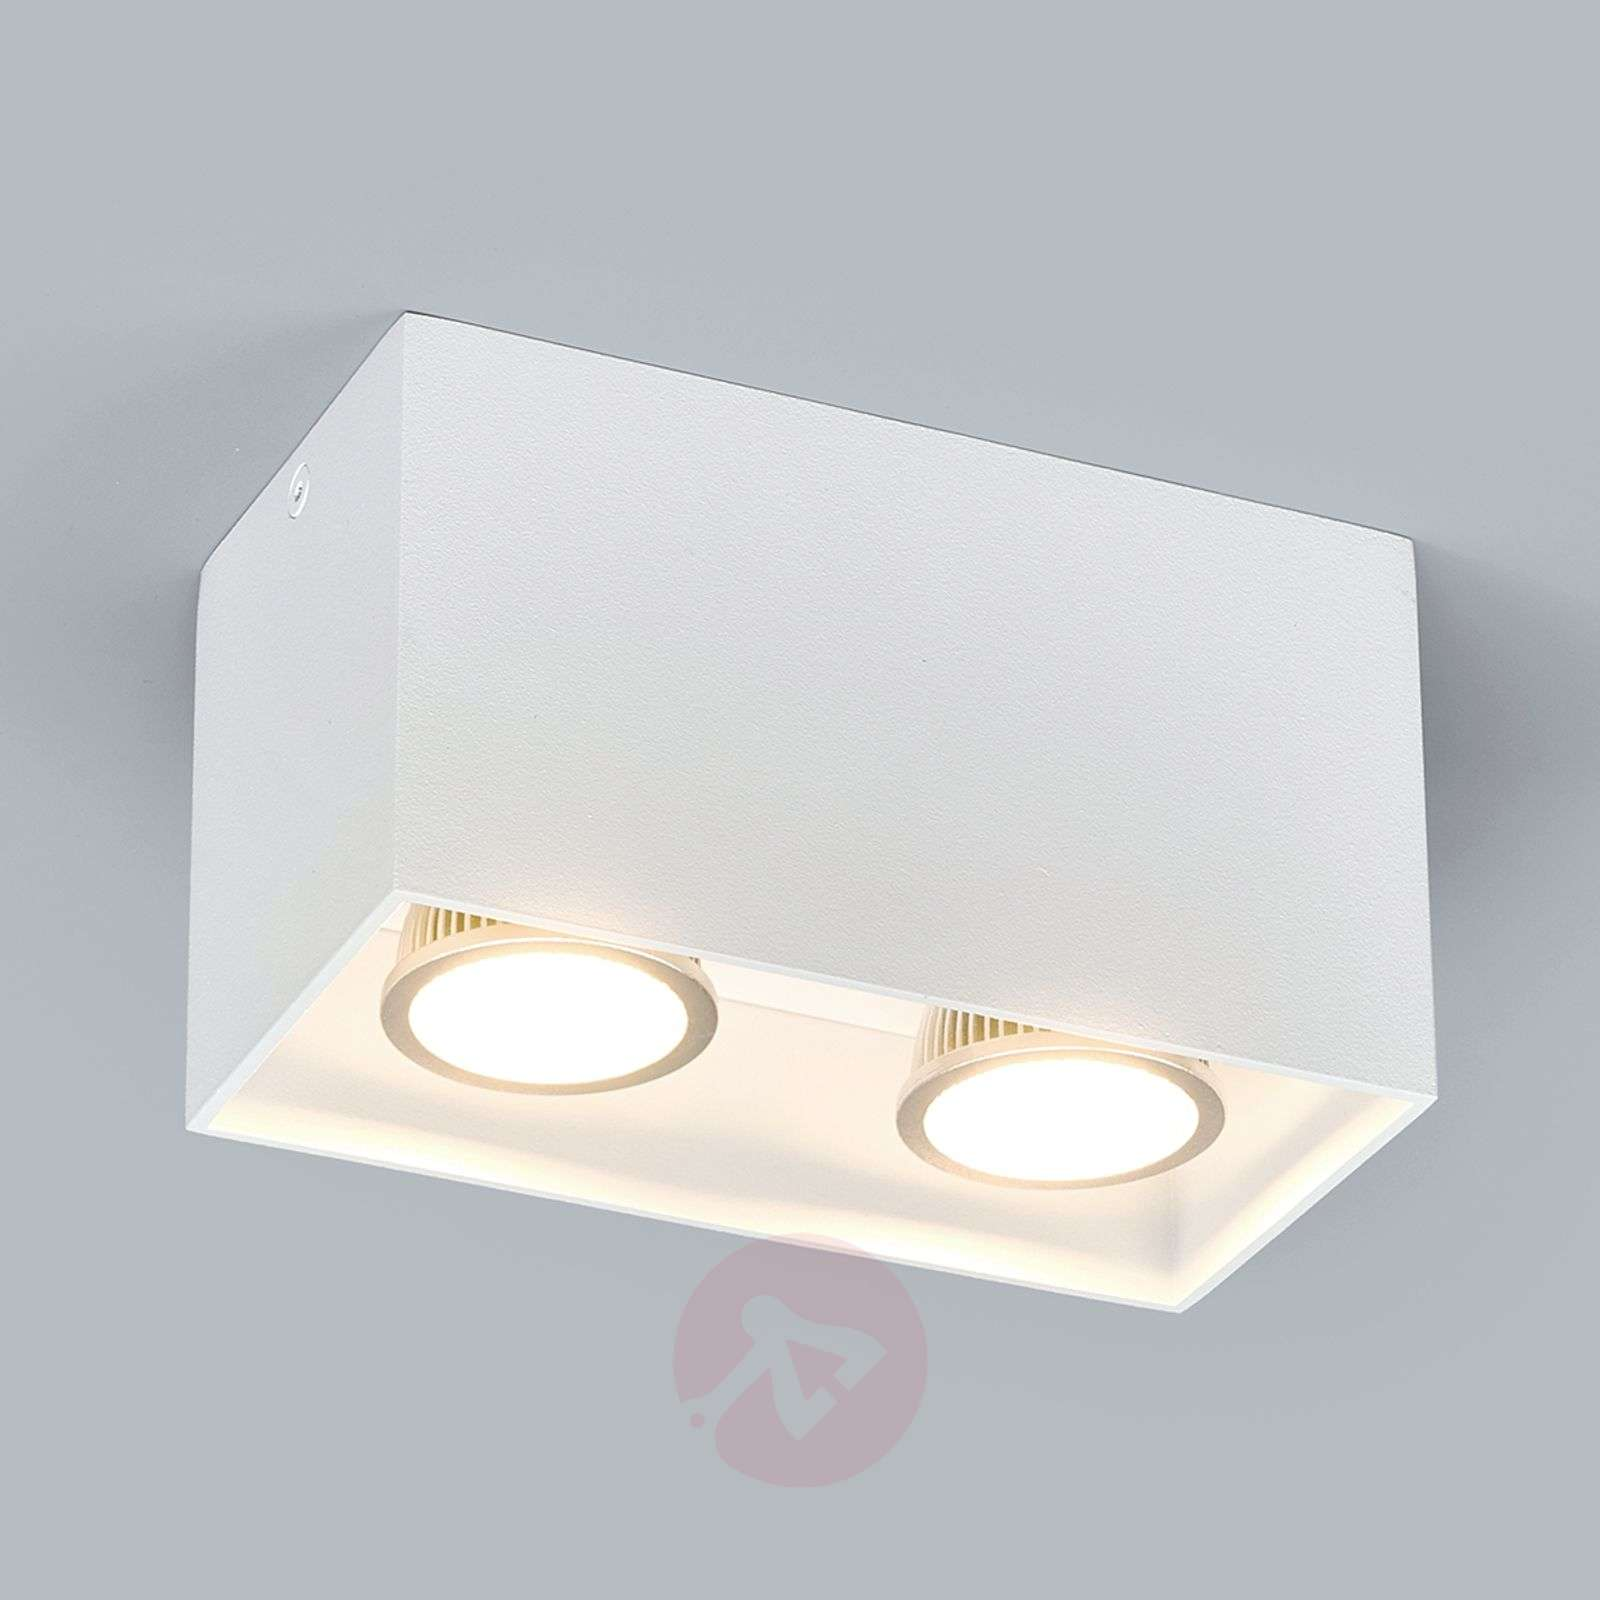 2 Bulb Surface Mounted Downlight Carson In White Lights